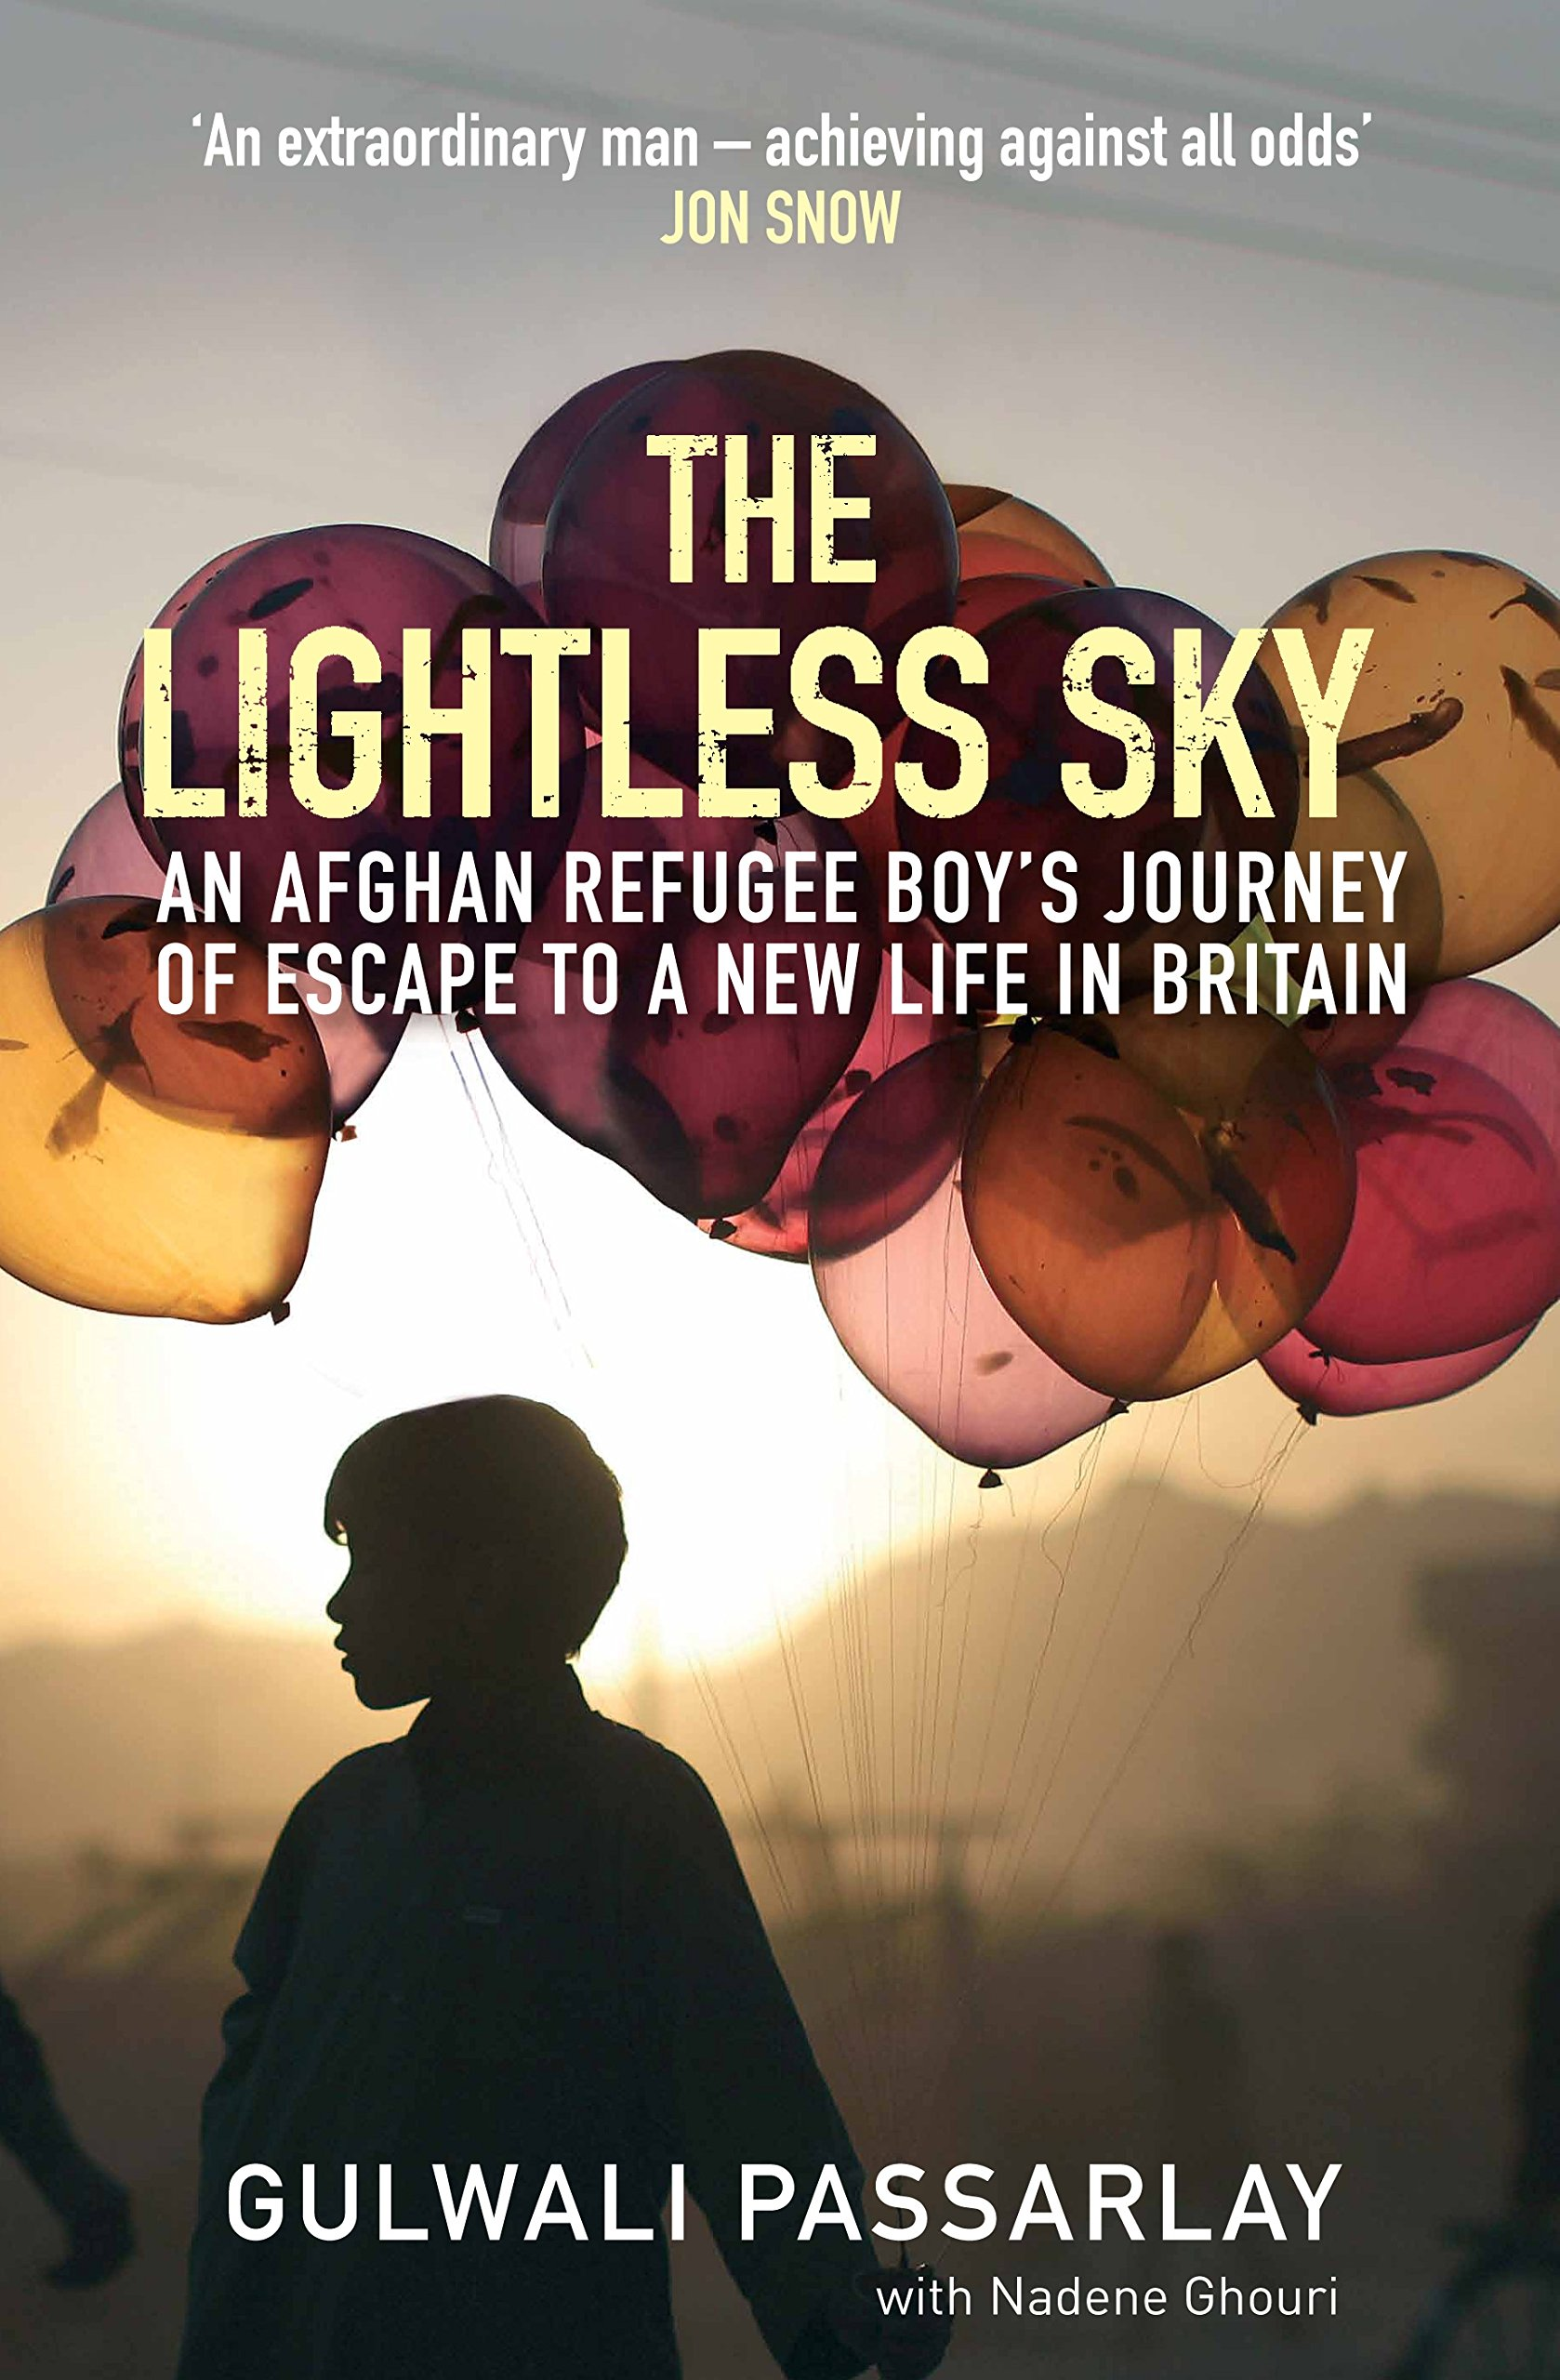 The Lightless Sky: An Afghan Refugee Boy's Journey Of Escape To A New Life  In Britain: Amazon: Gulwali Passarlay, Nadene Ghouri: 9781782398448:  Books